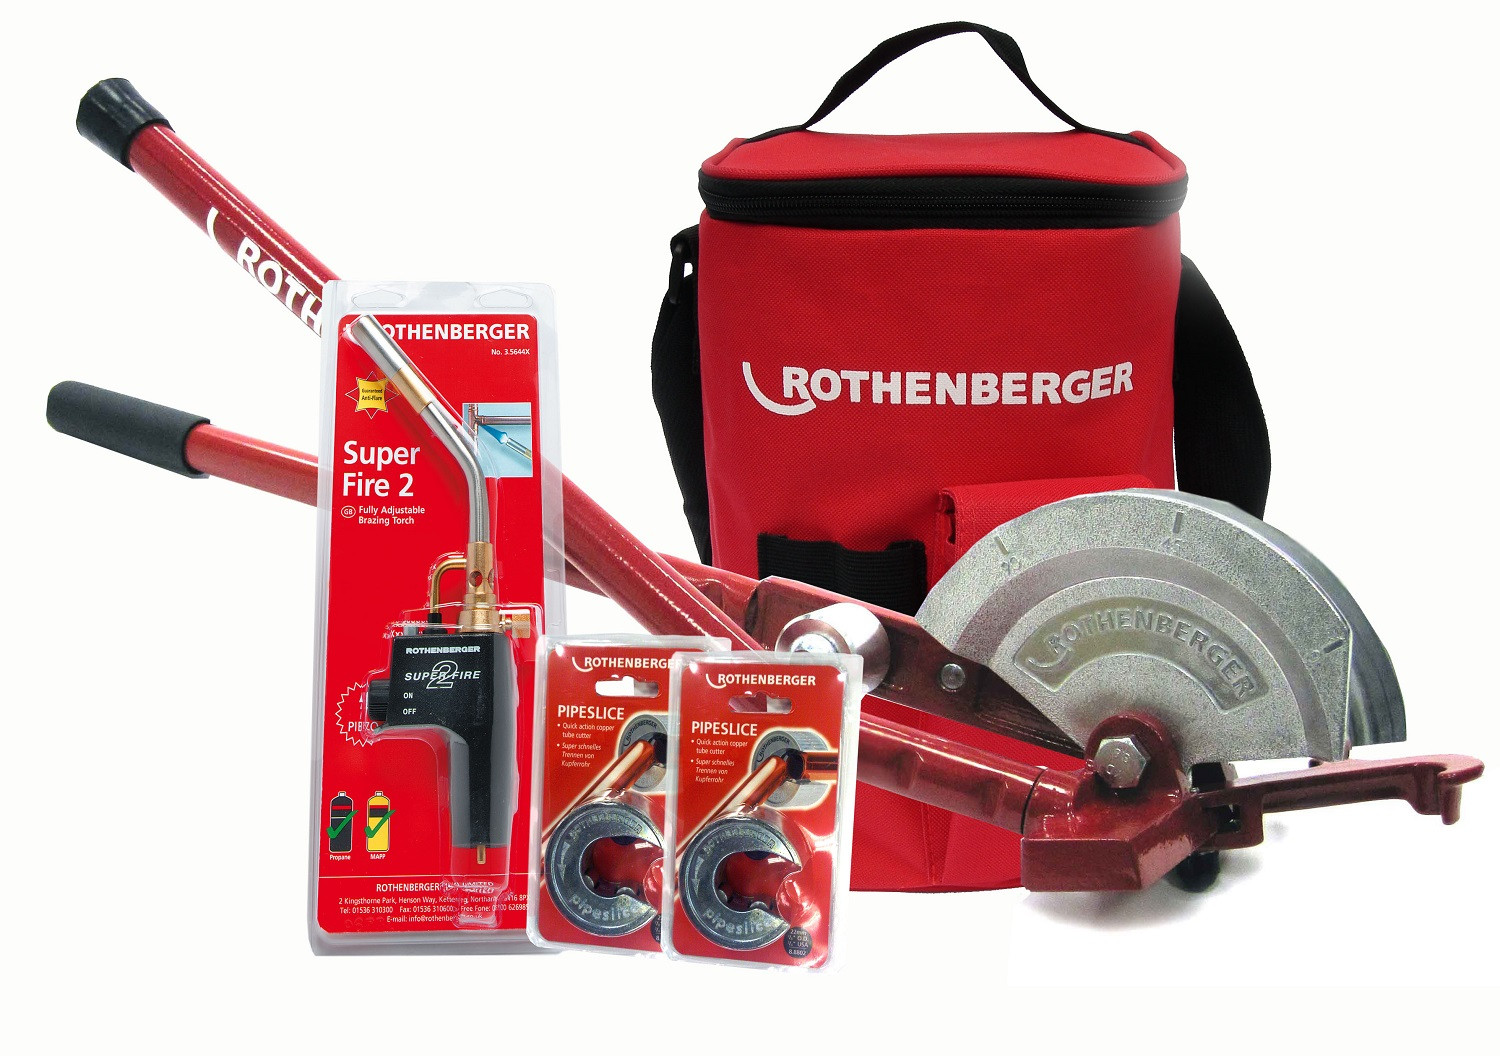 Rothenberger Superfire 2 Kit With Multibender Carry Bag And Pipeslice Hotbag Deal